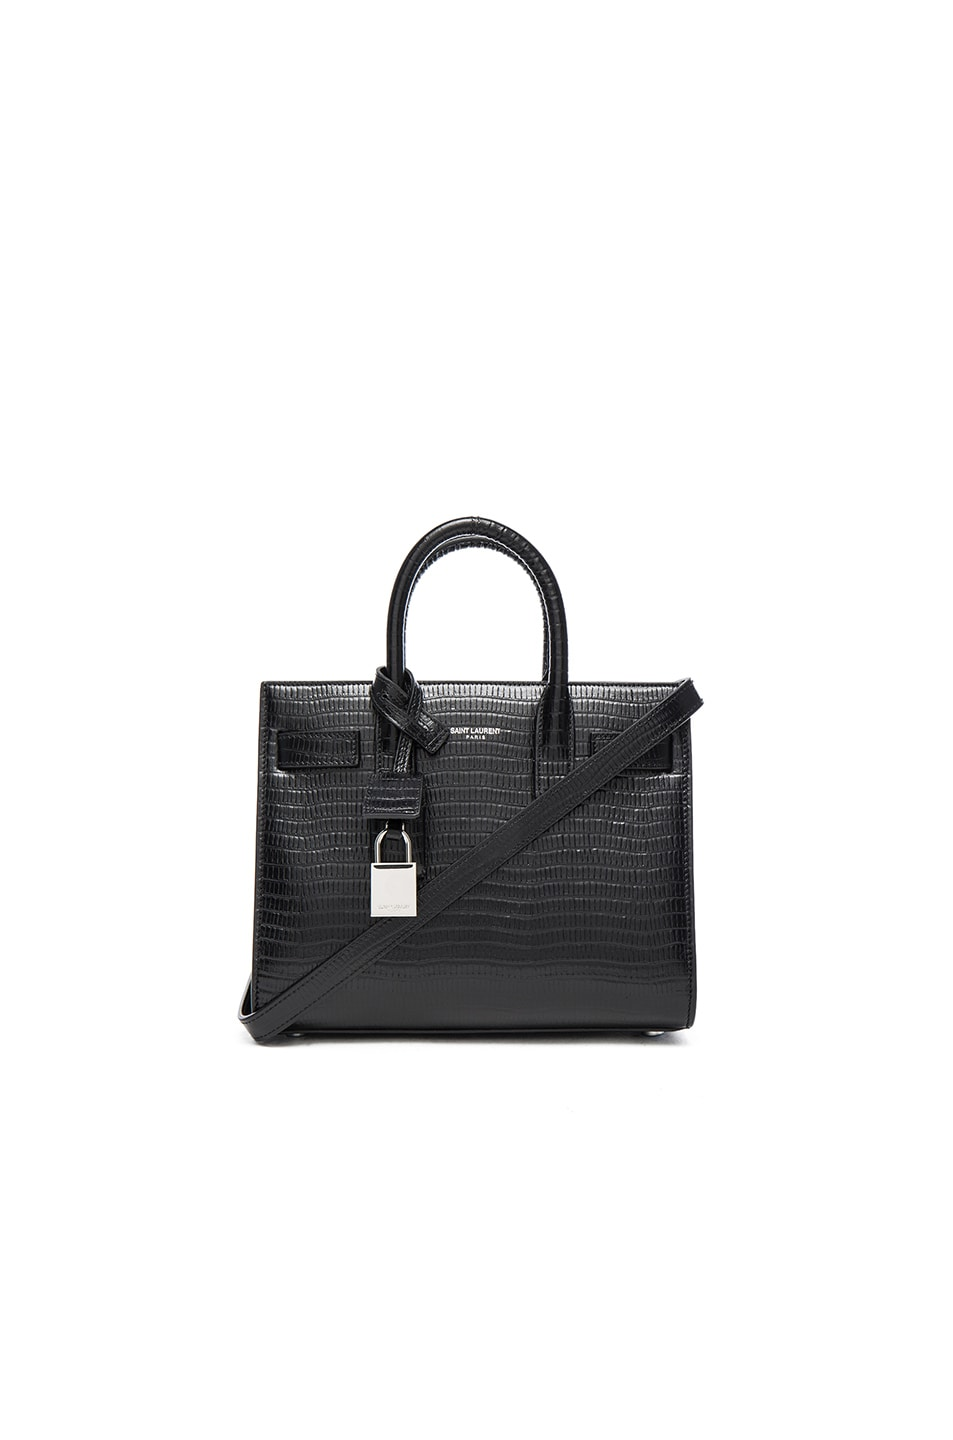 Image 1 of Saint Laurent Nano Lizard Effect Sac De Jour in Black